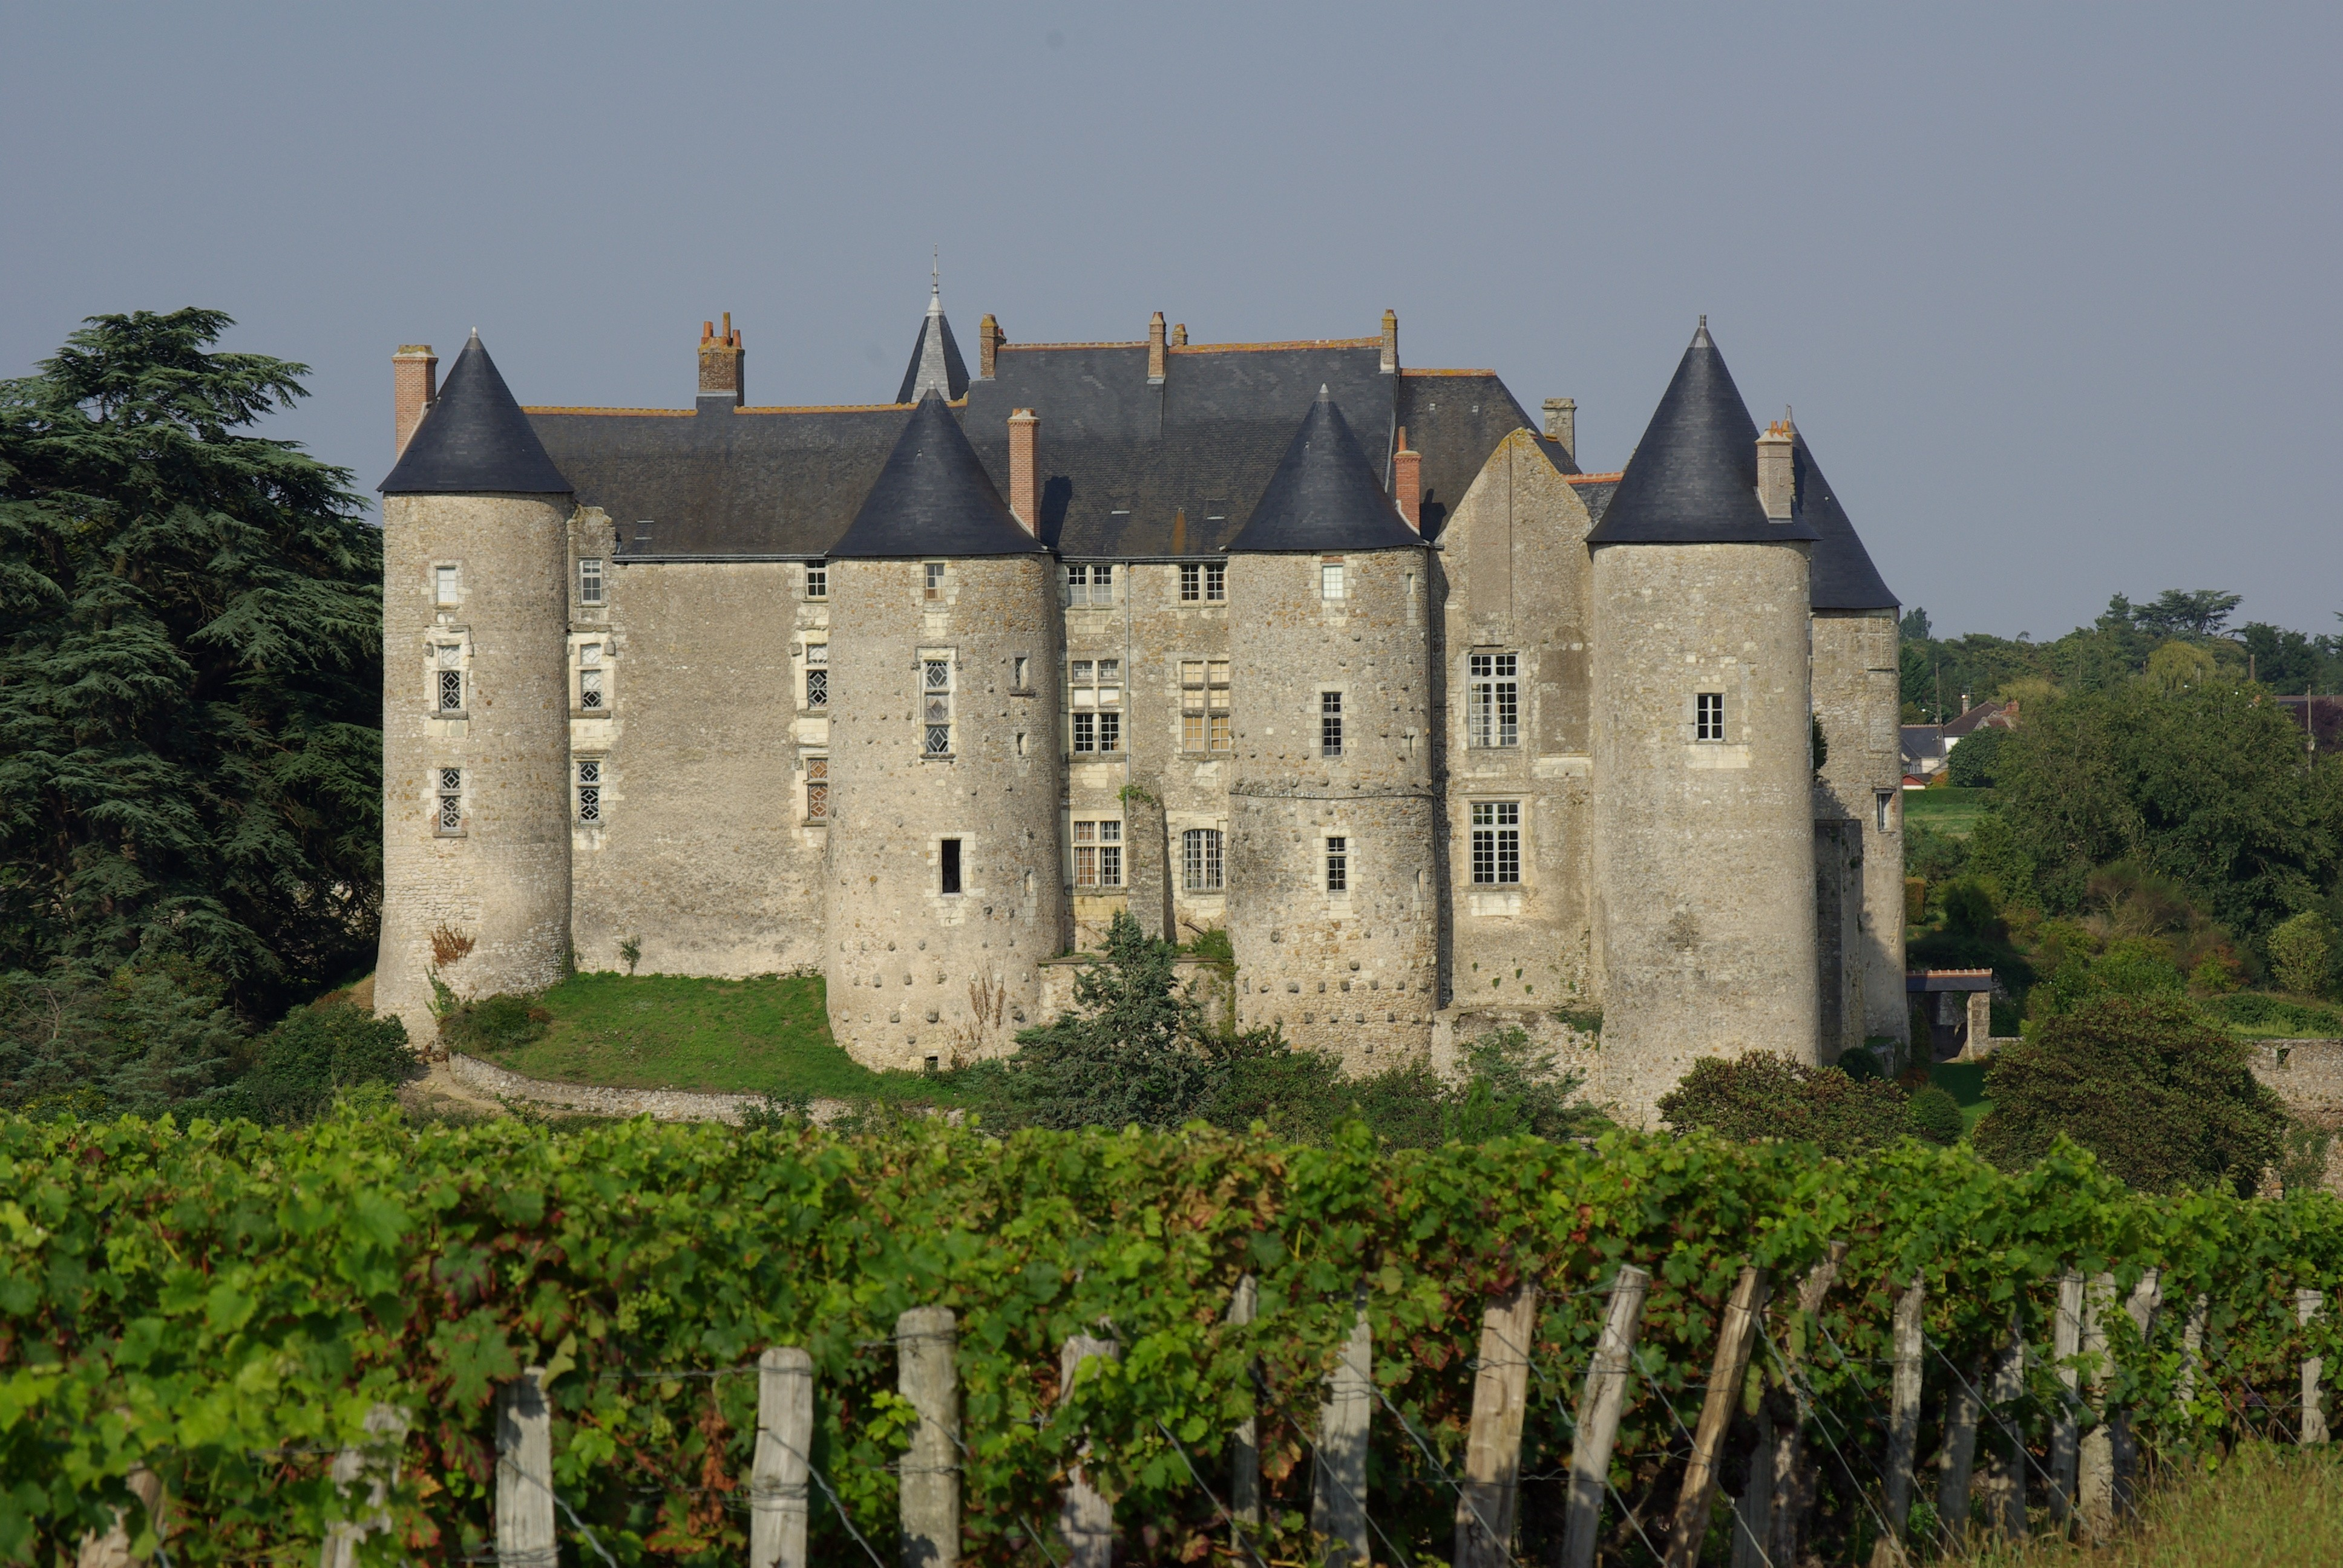 FOURRIERE LUYNES